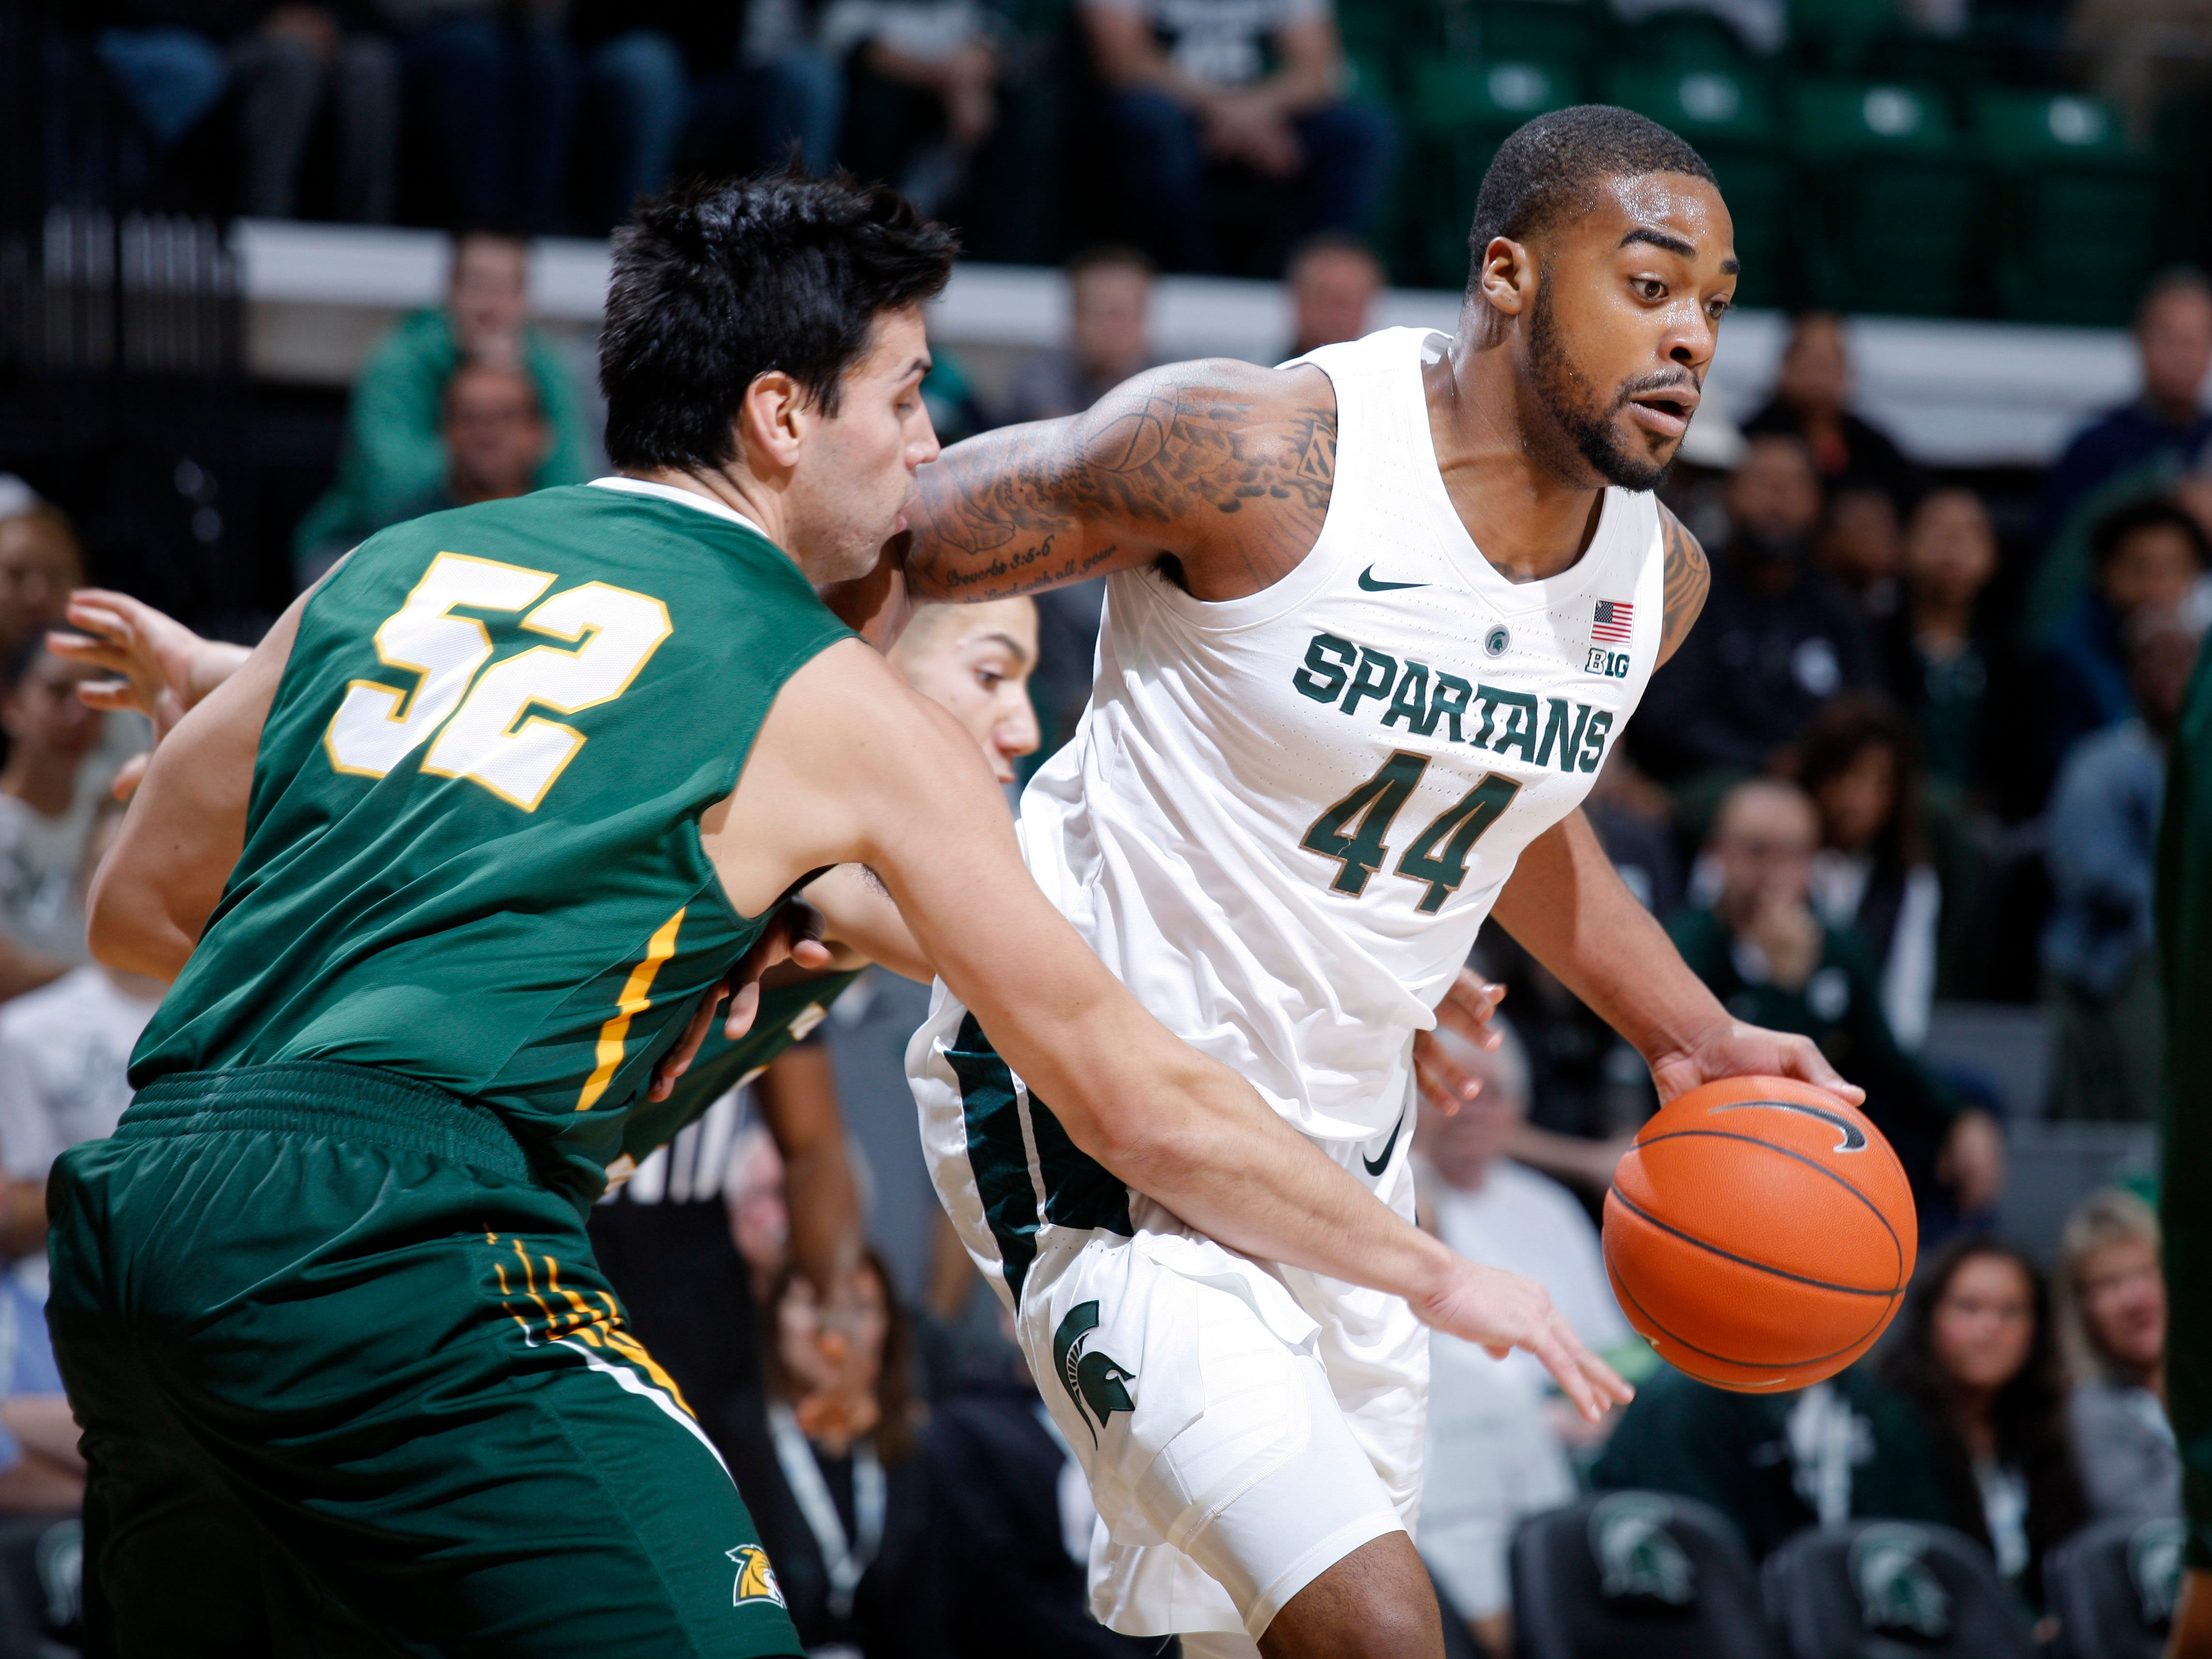 Michigan State's Nick Ward, right, maneuvers against Northern Michigan's Max Prendergast, Tuesday, Oct. 30, 2018, in East Lansing, Mich.